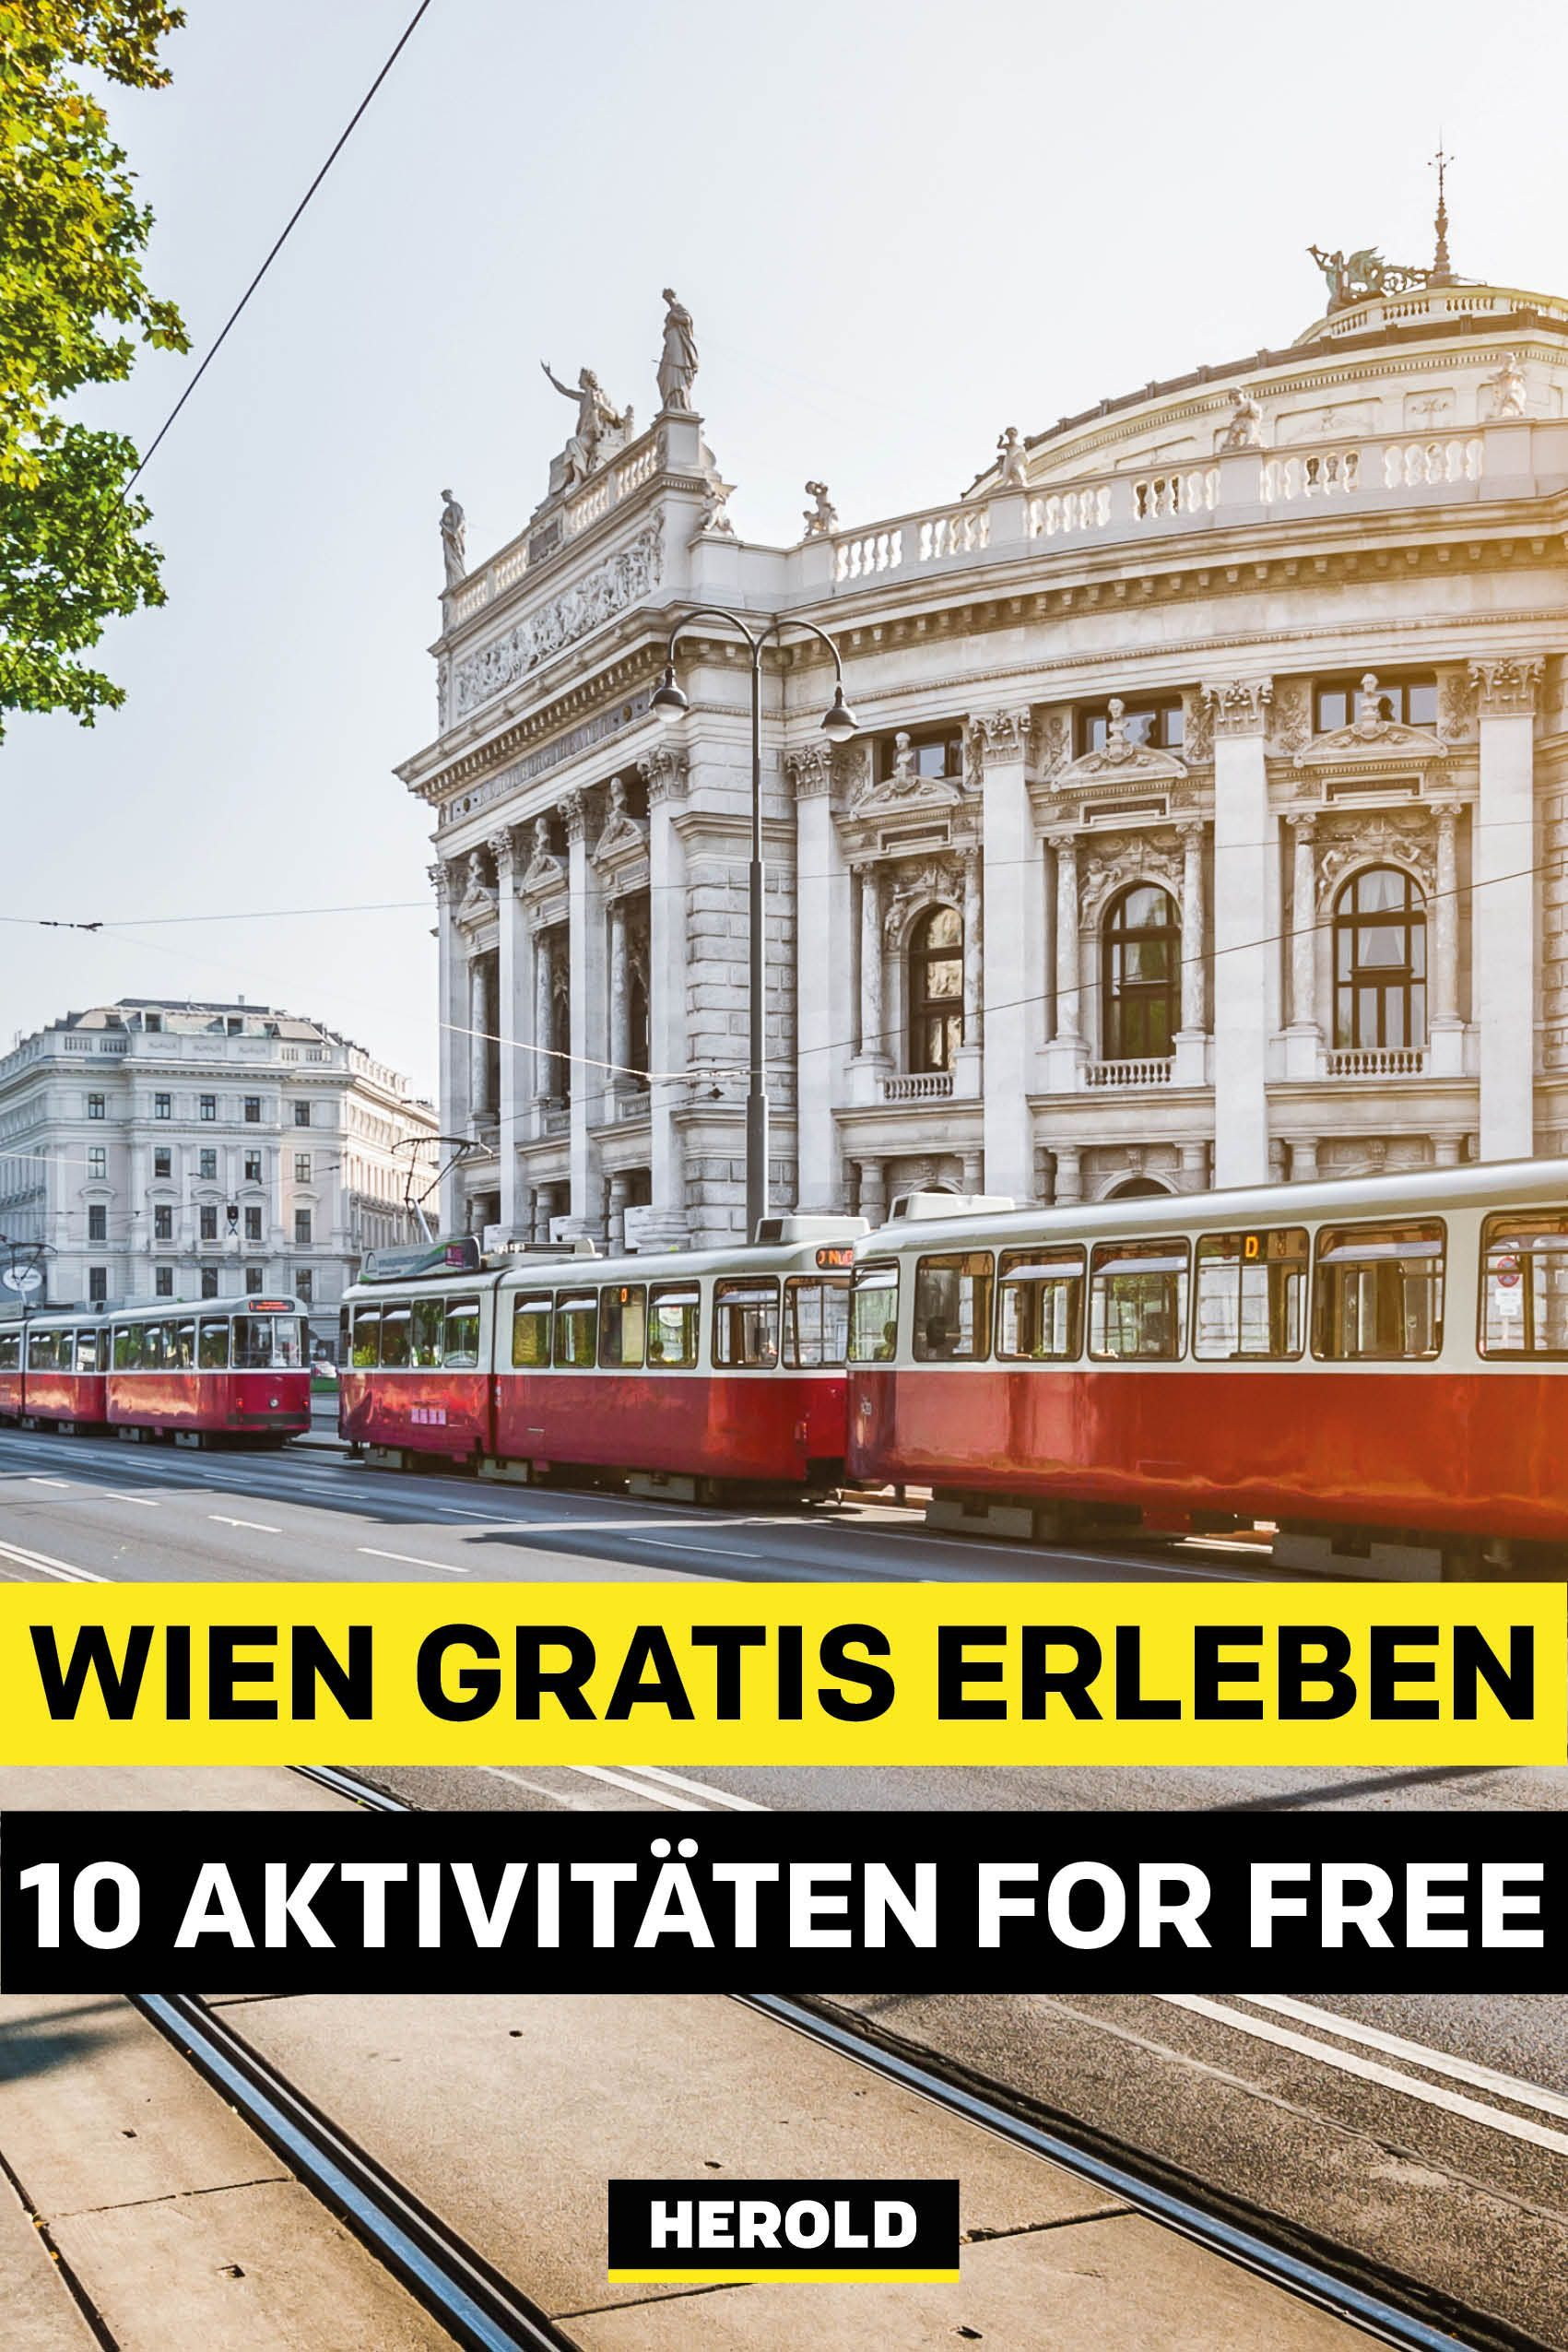 Experience Vienna for free: 10 free activities -  Free to the museum, free to the cinema and free food? This works out! We have researched how you ca - #activities #experience #florenceitalytravel #free #italytravel #letstravel #travelexperiences #travelmugdiy #ustravelideas #vienna